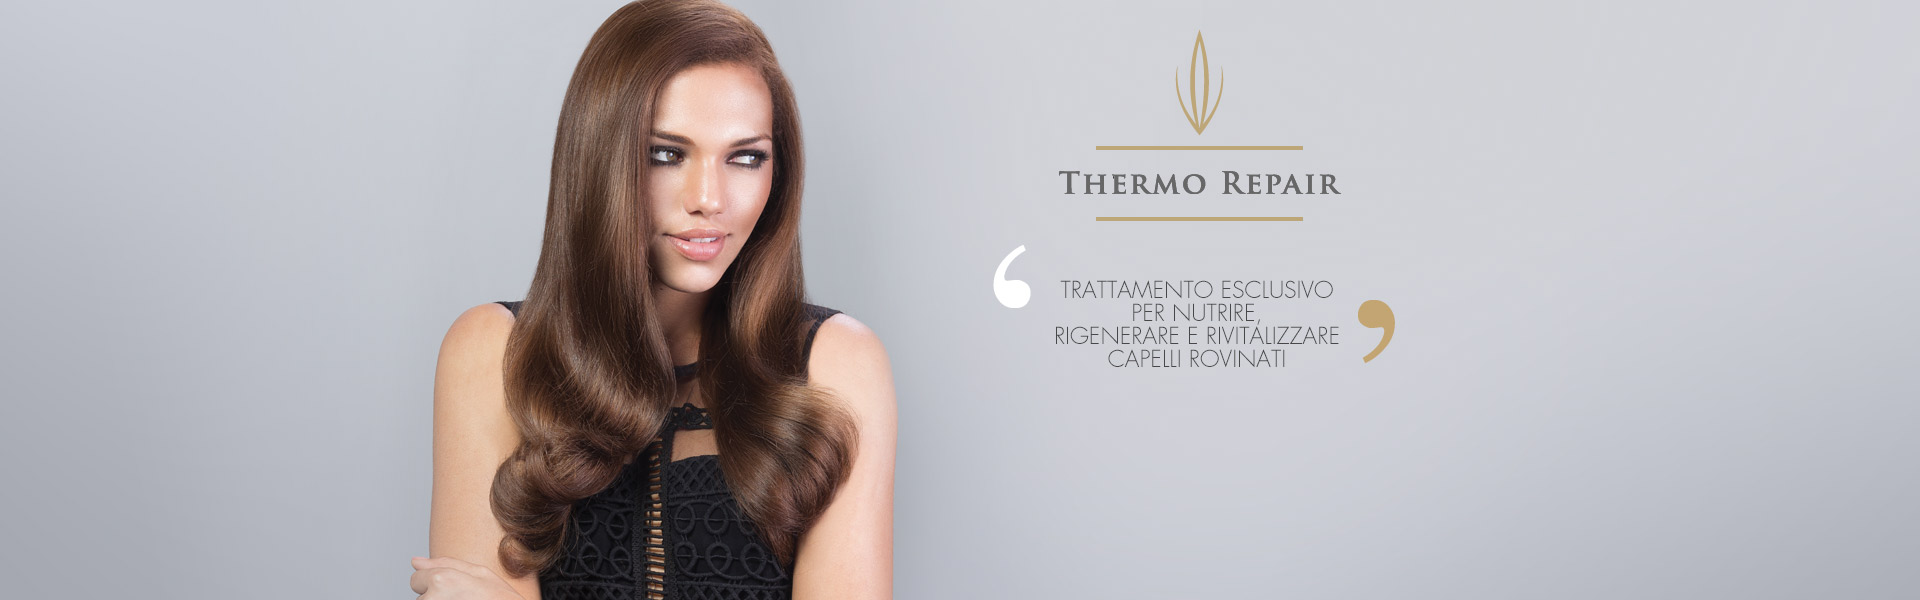 thermo_repair_it